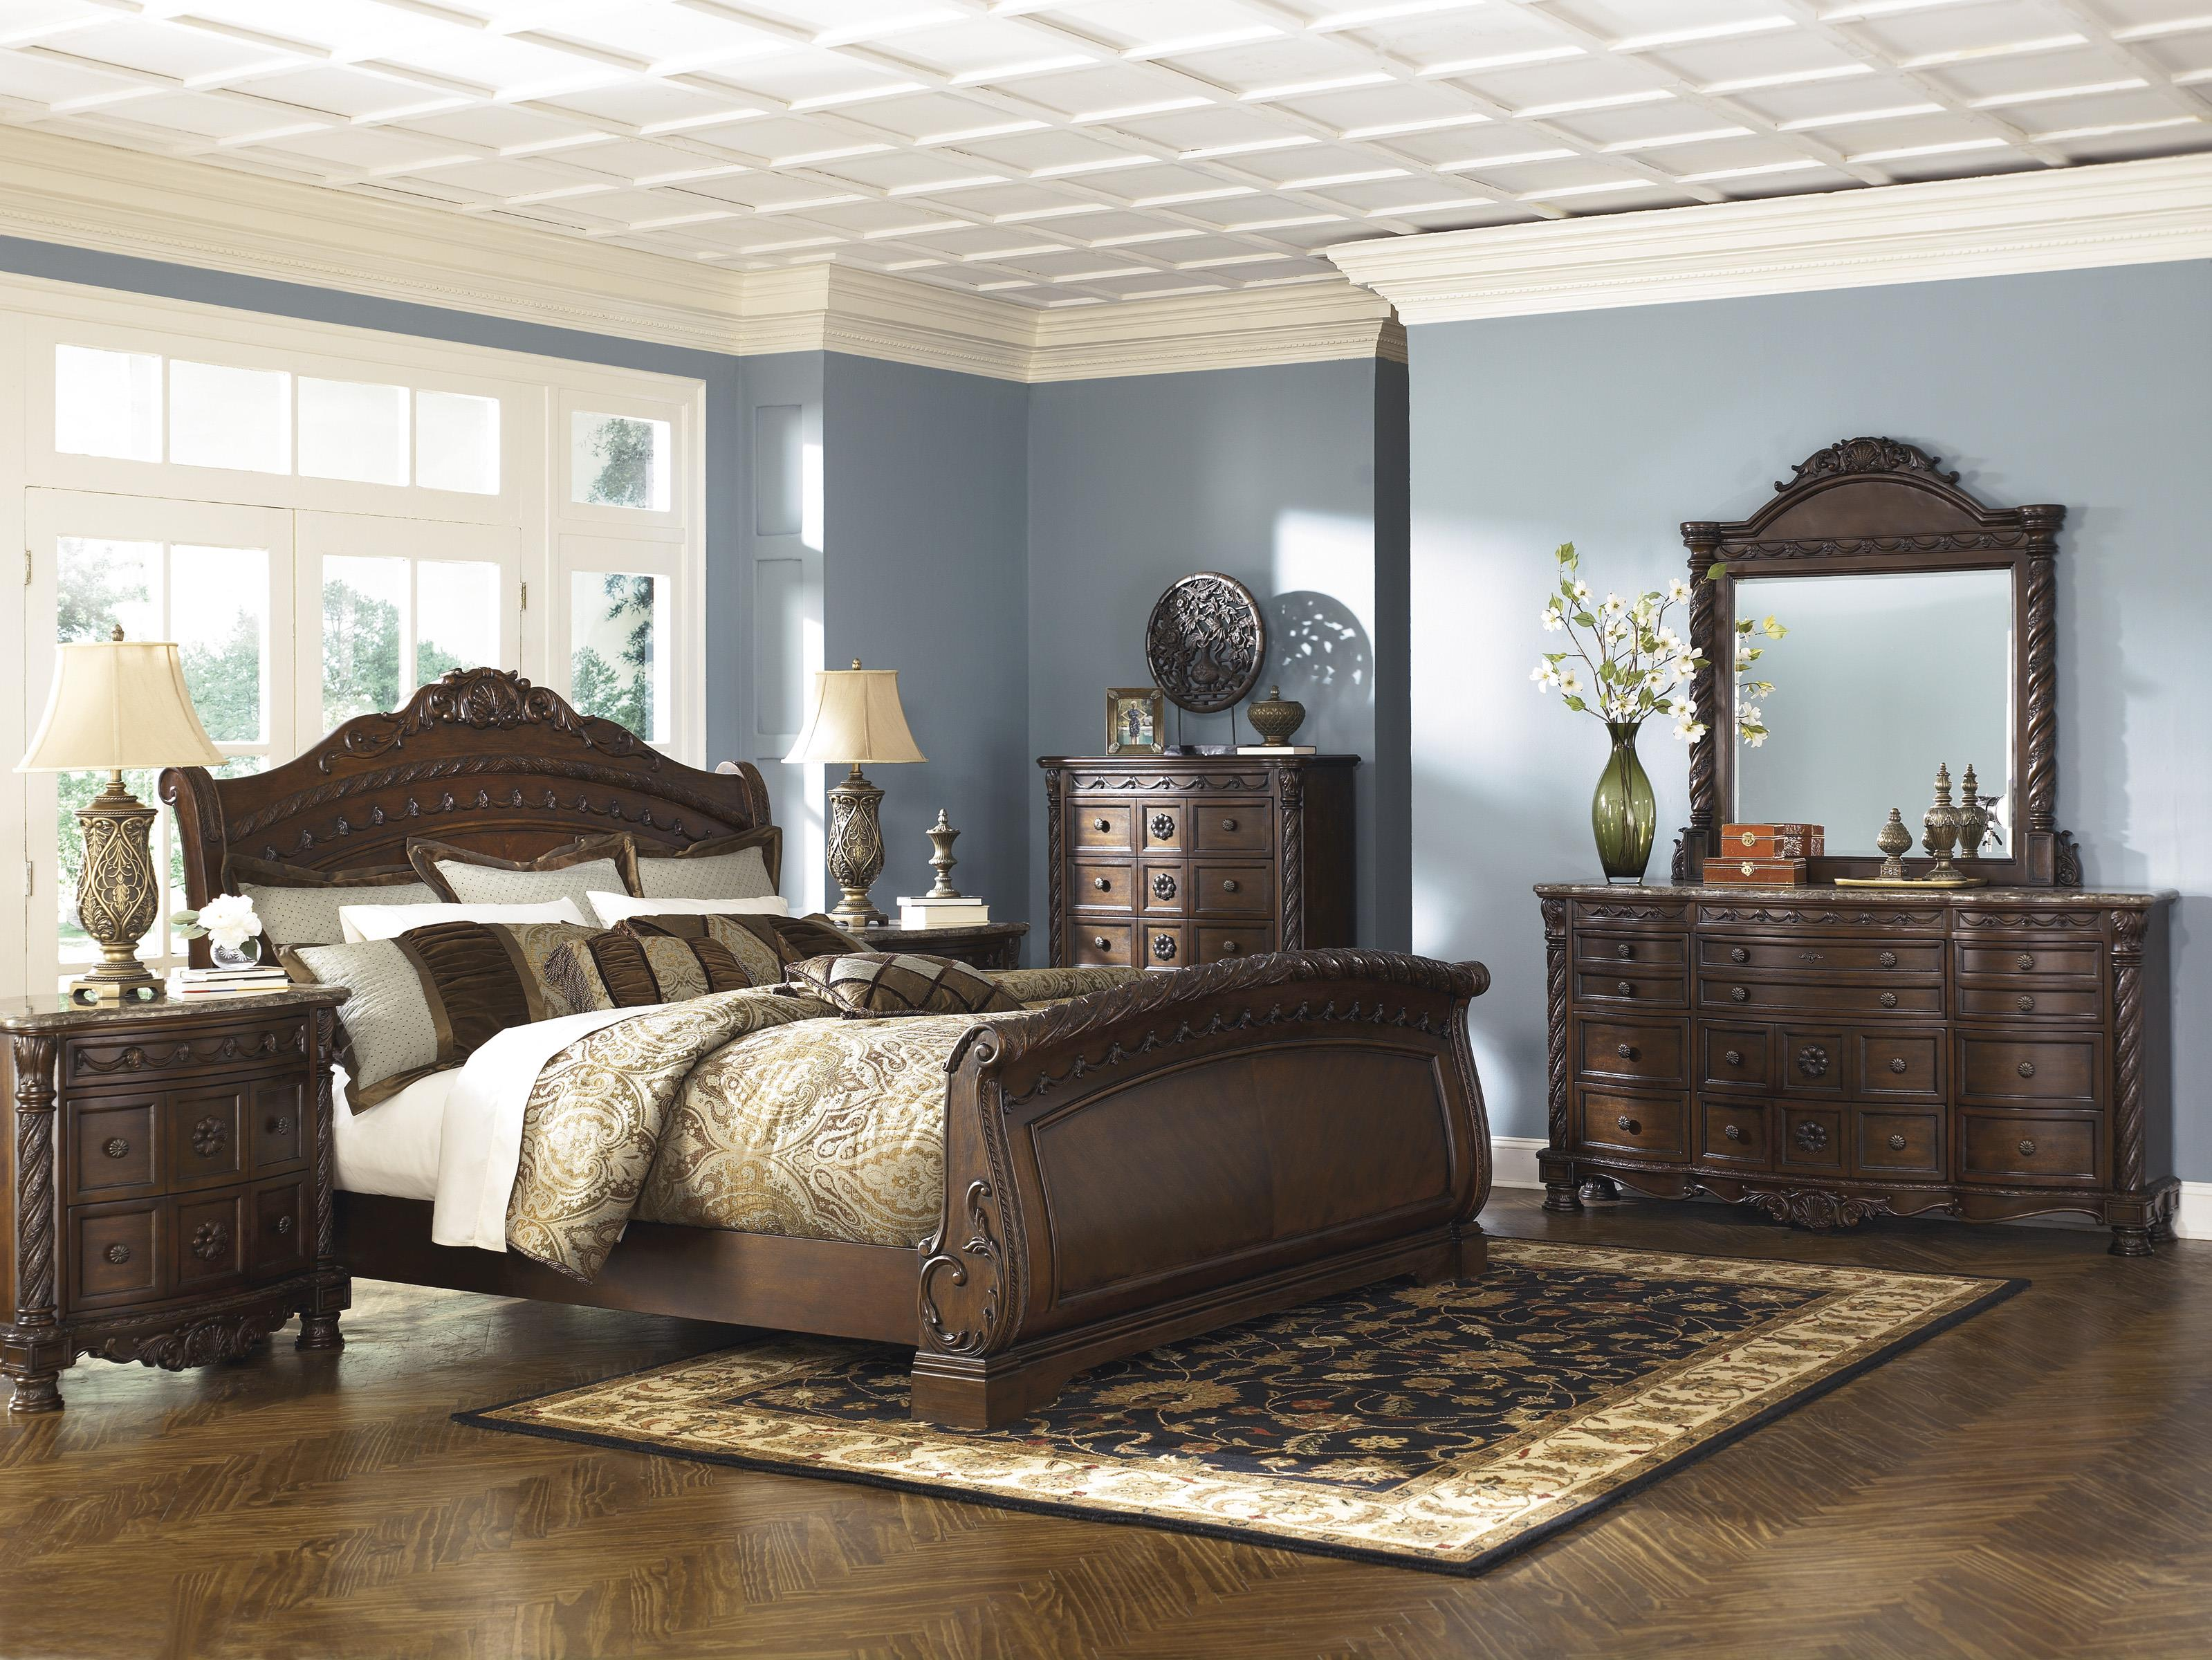 North Shore Queen Bedroom Group by Millennium at Beck's Furniture